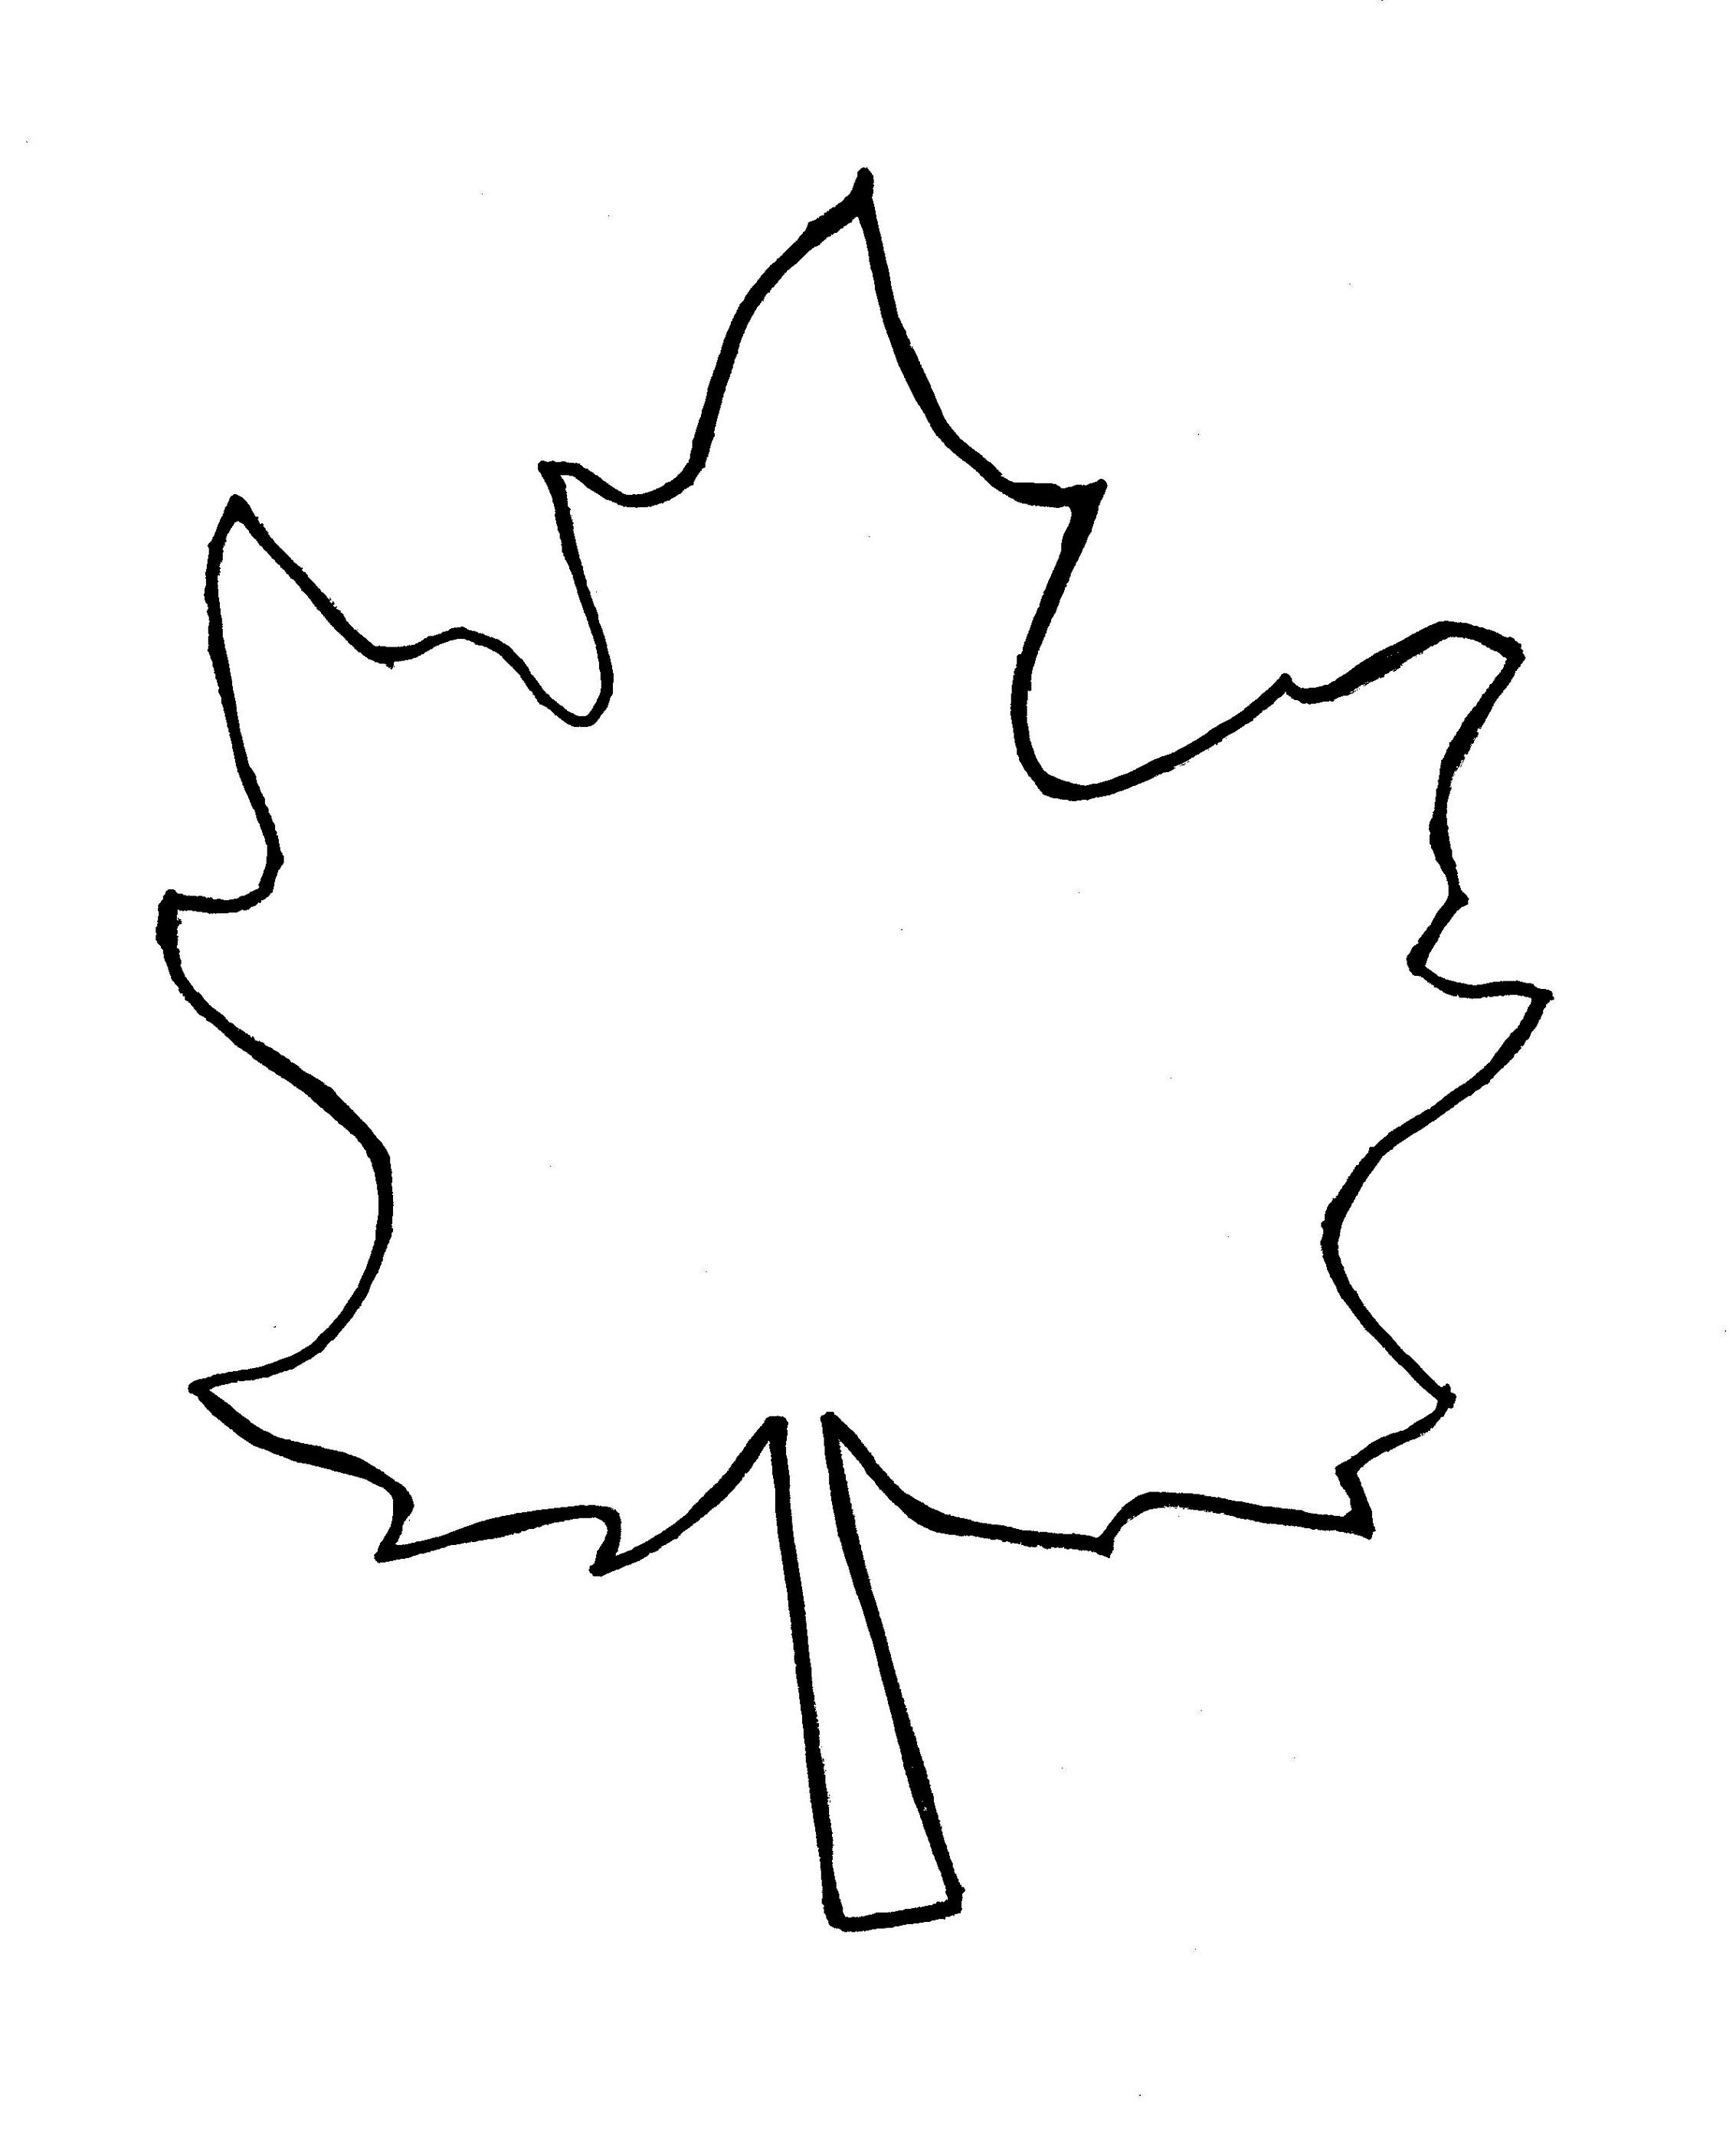 Leaves clipart outline. Autumn leaf template free